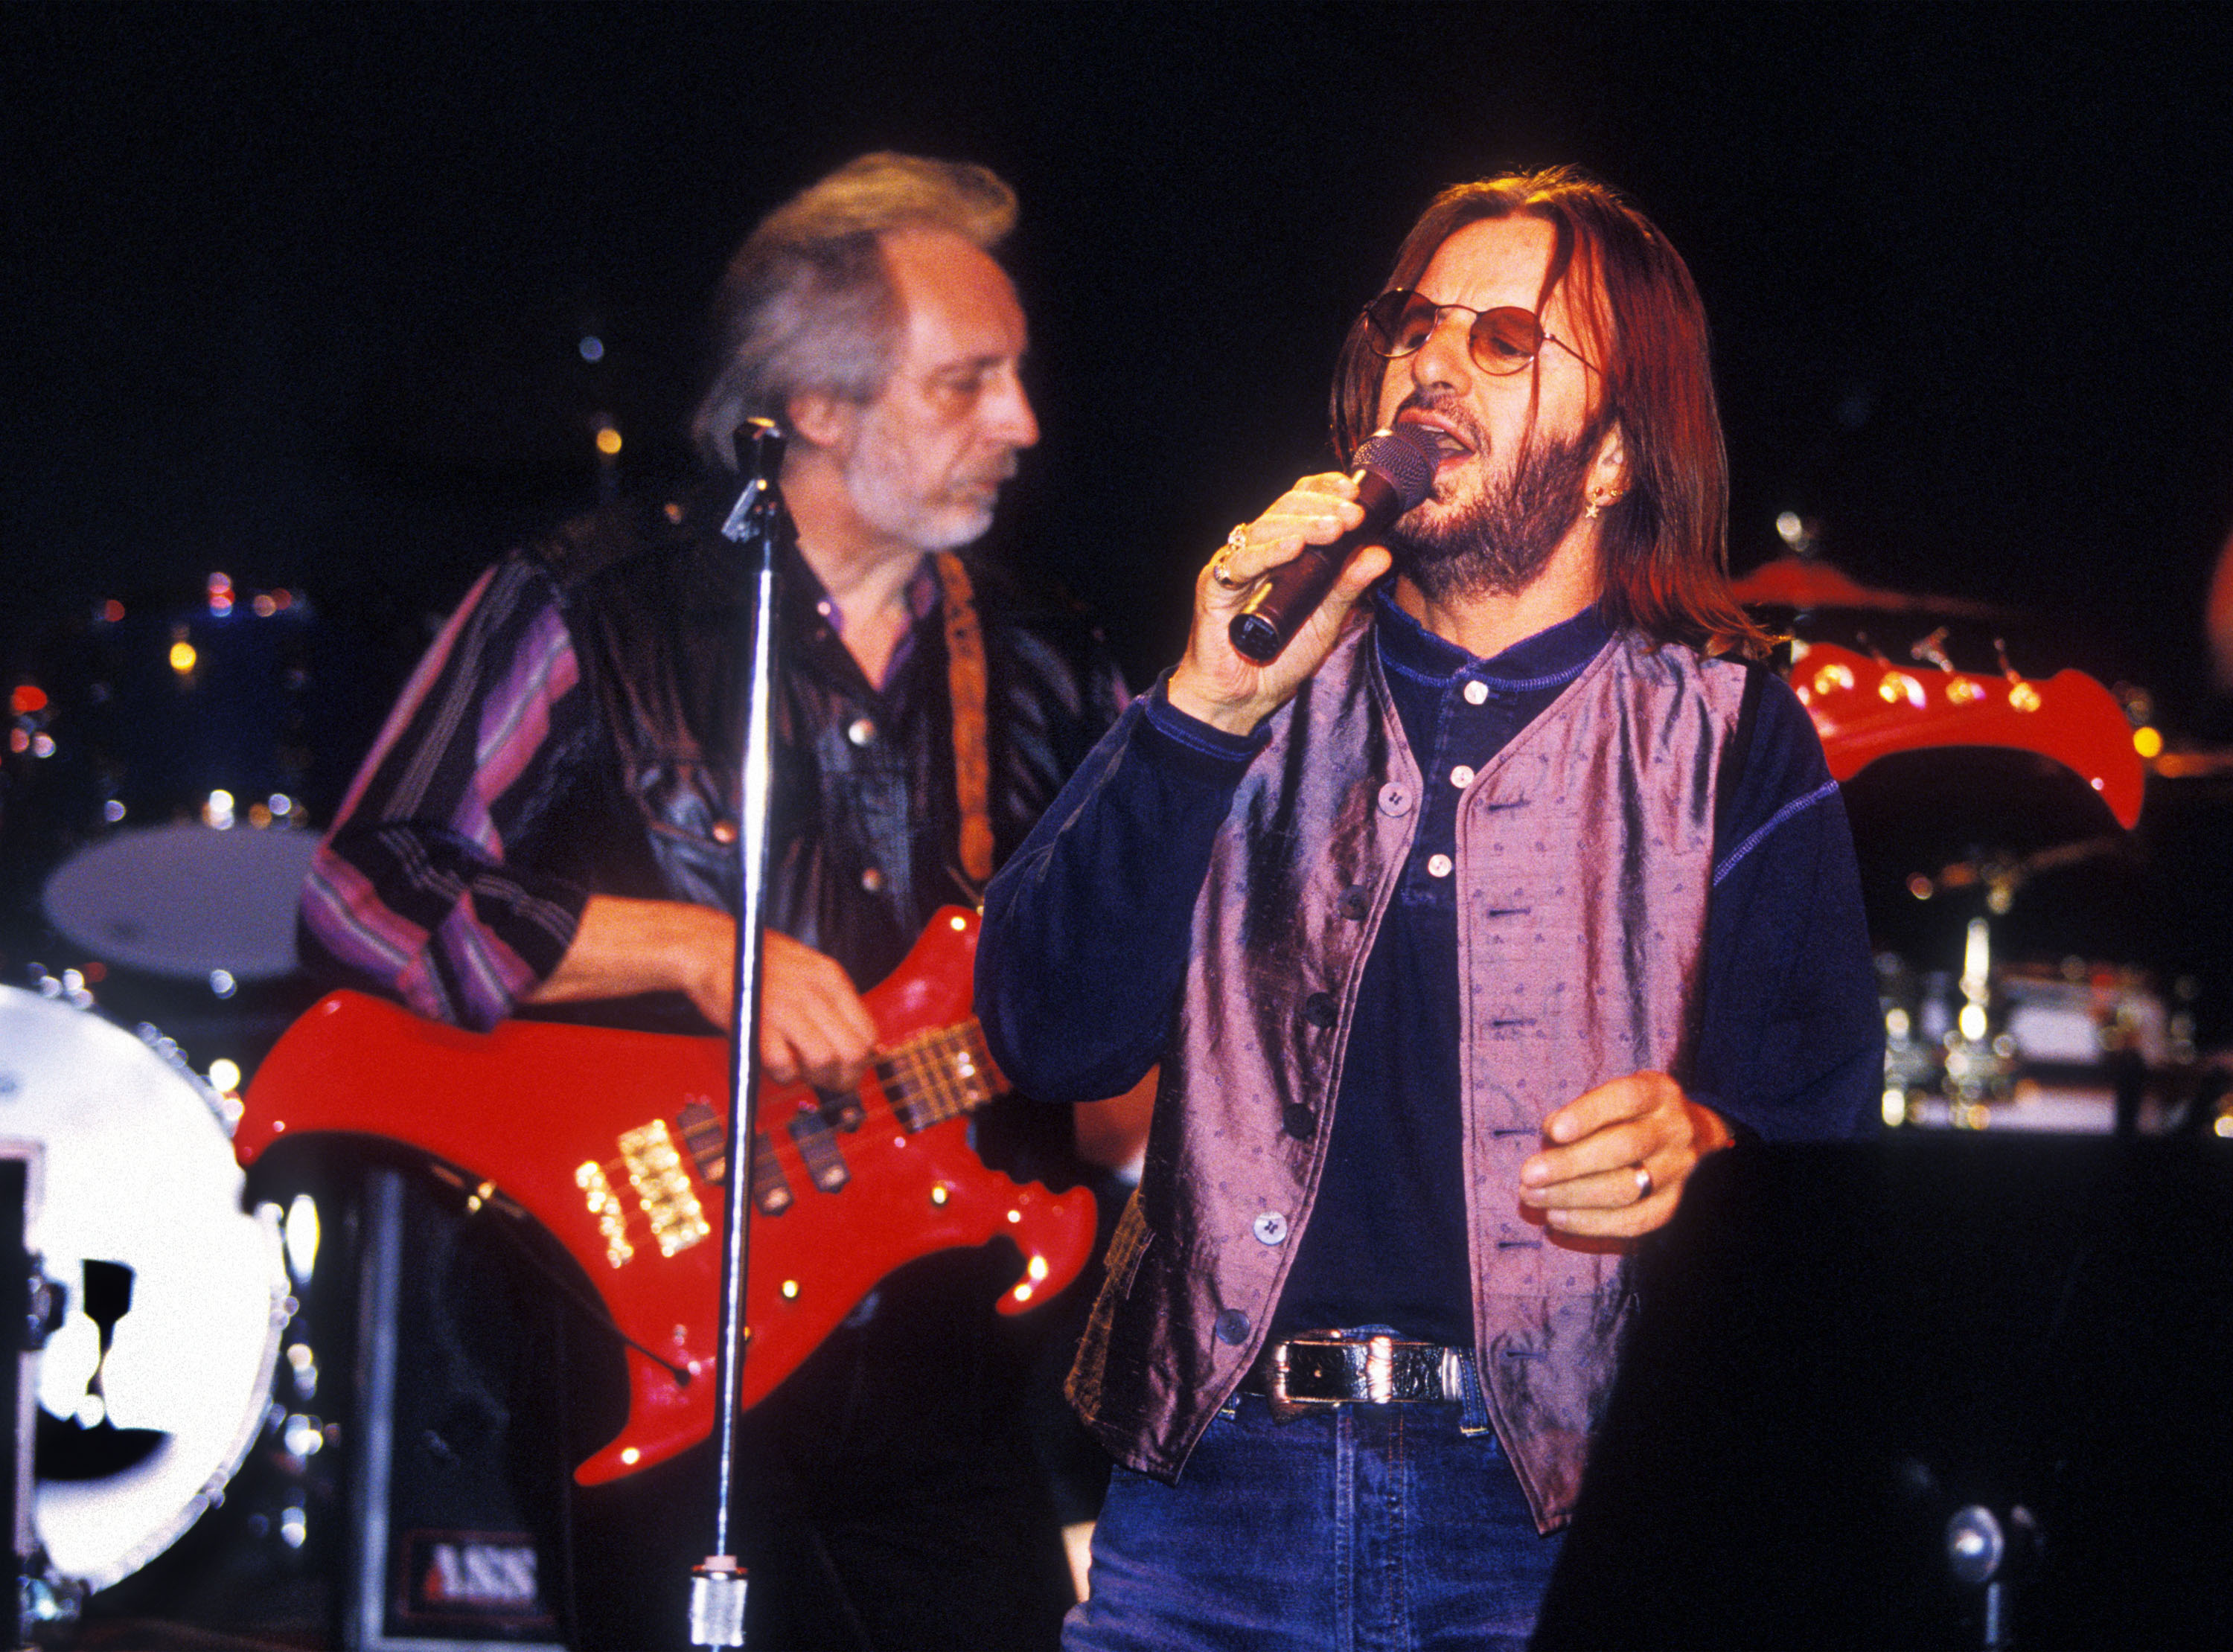 VANCOUVER, CANADA:  John Entwistle plays with the Ringo Starr in the summer of 1995 in Vancouver, Candada.  Entwistle died June 27, 2002.  (Photo by Jeff Vinnick/Getty Images)